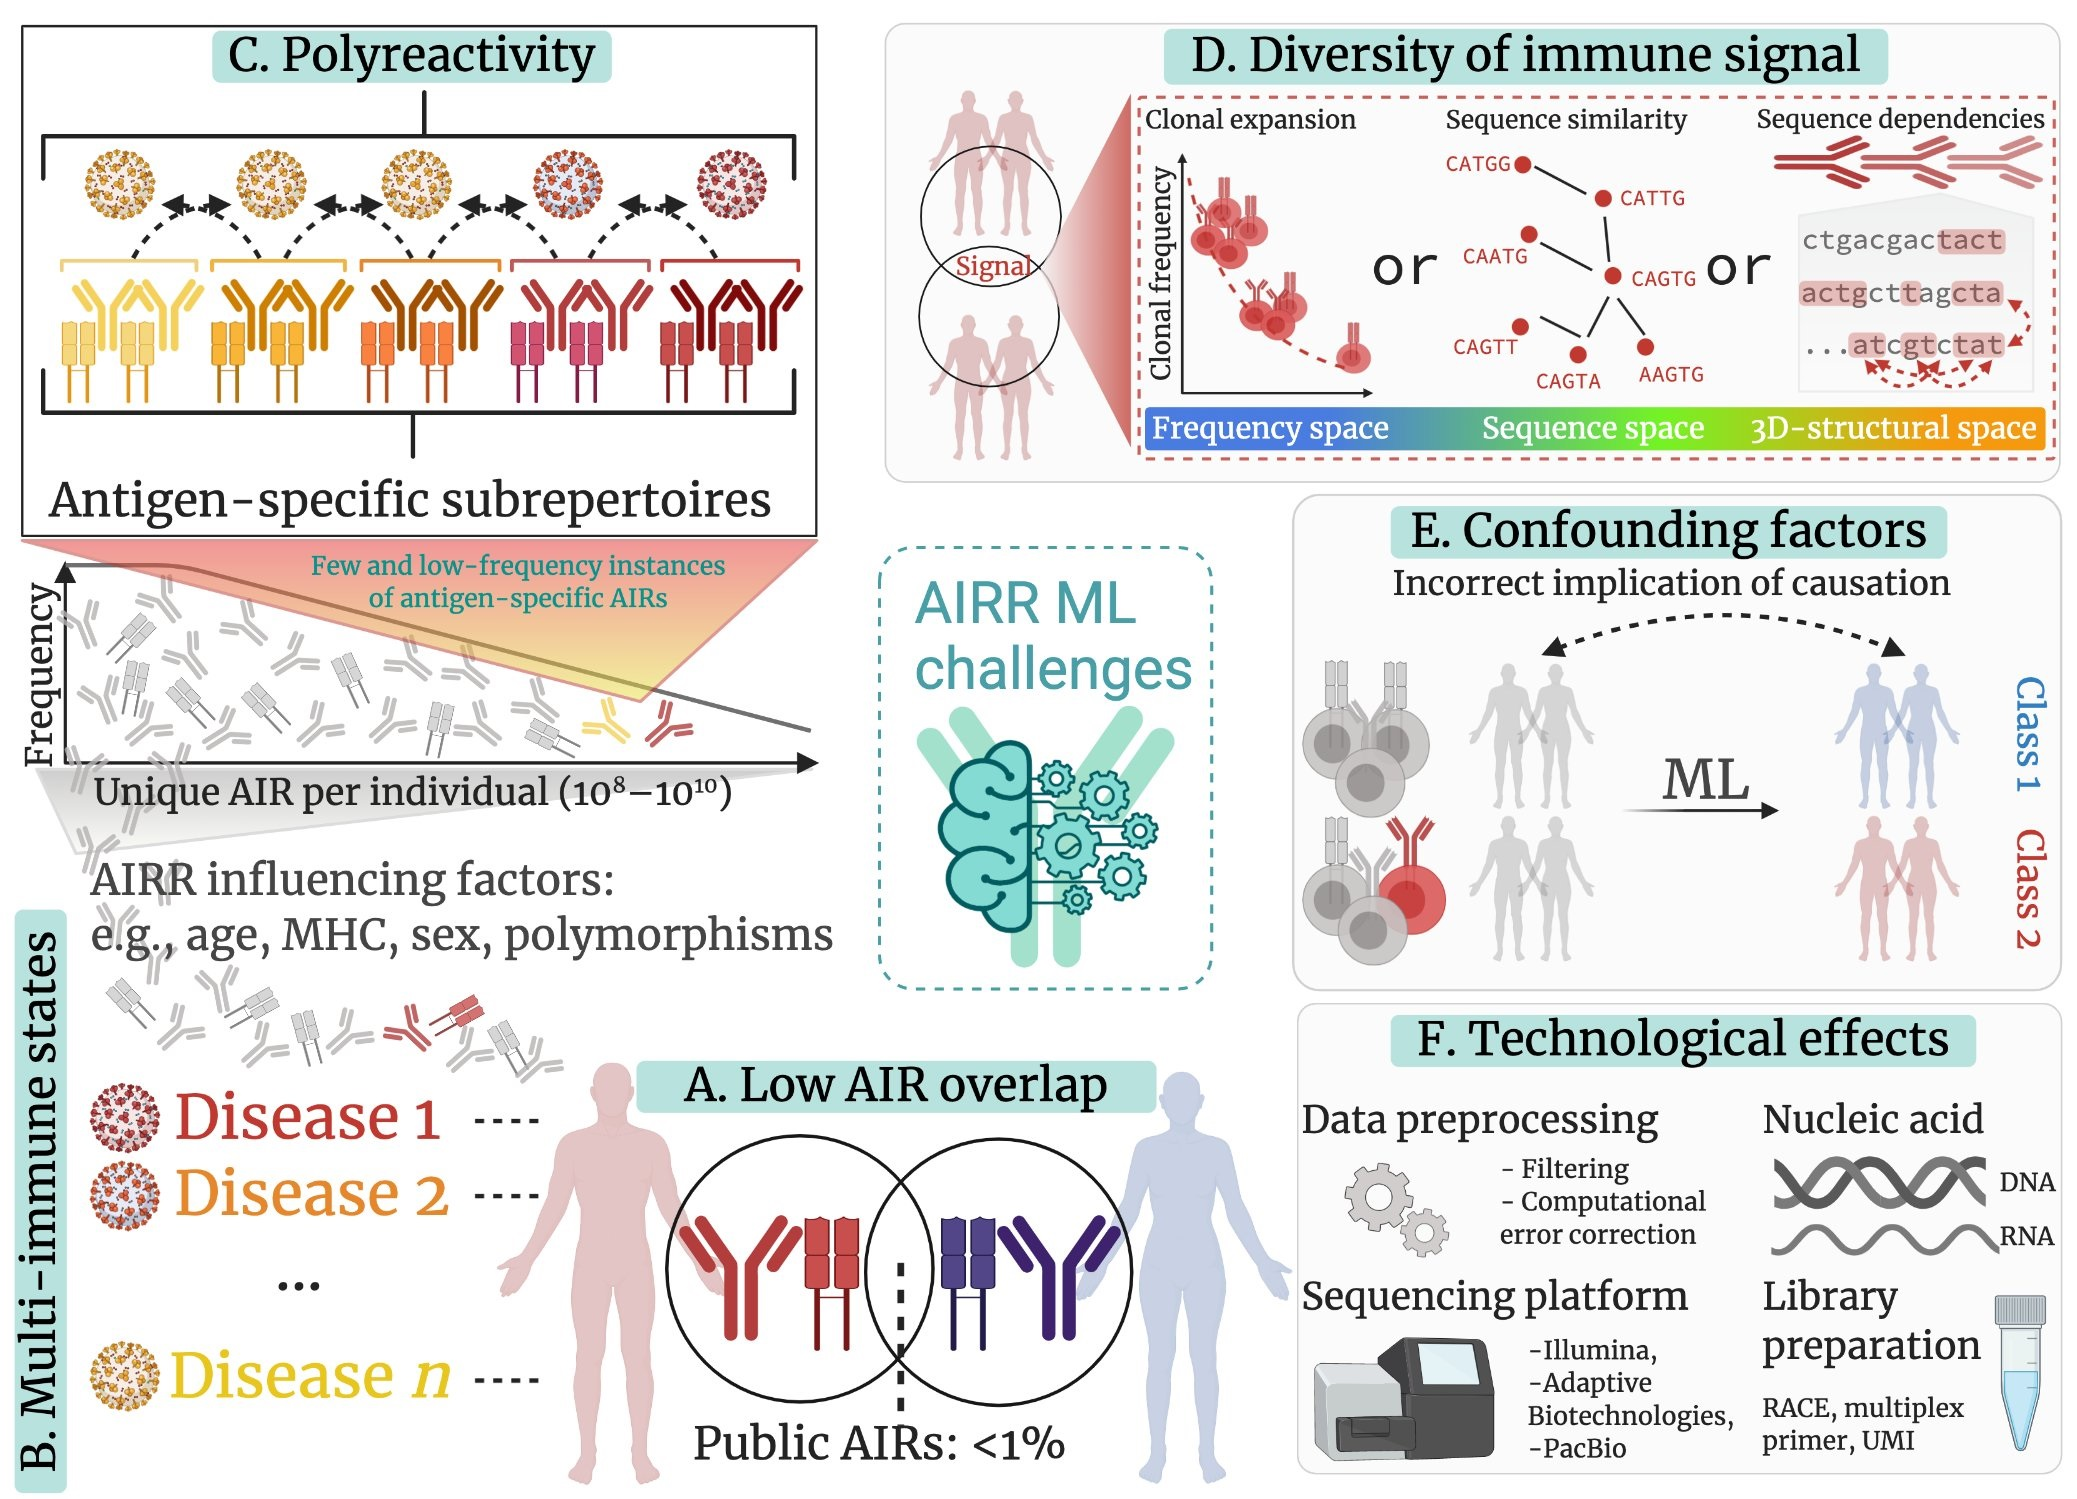 Mining adaptive immune receptor repertoires for biological and clinical information using machine learning